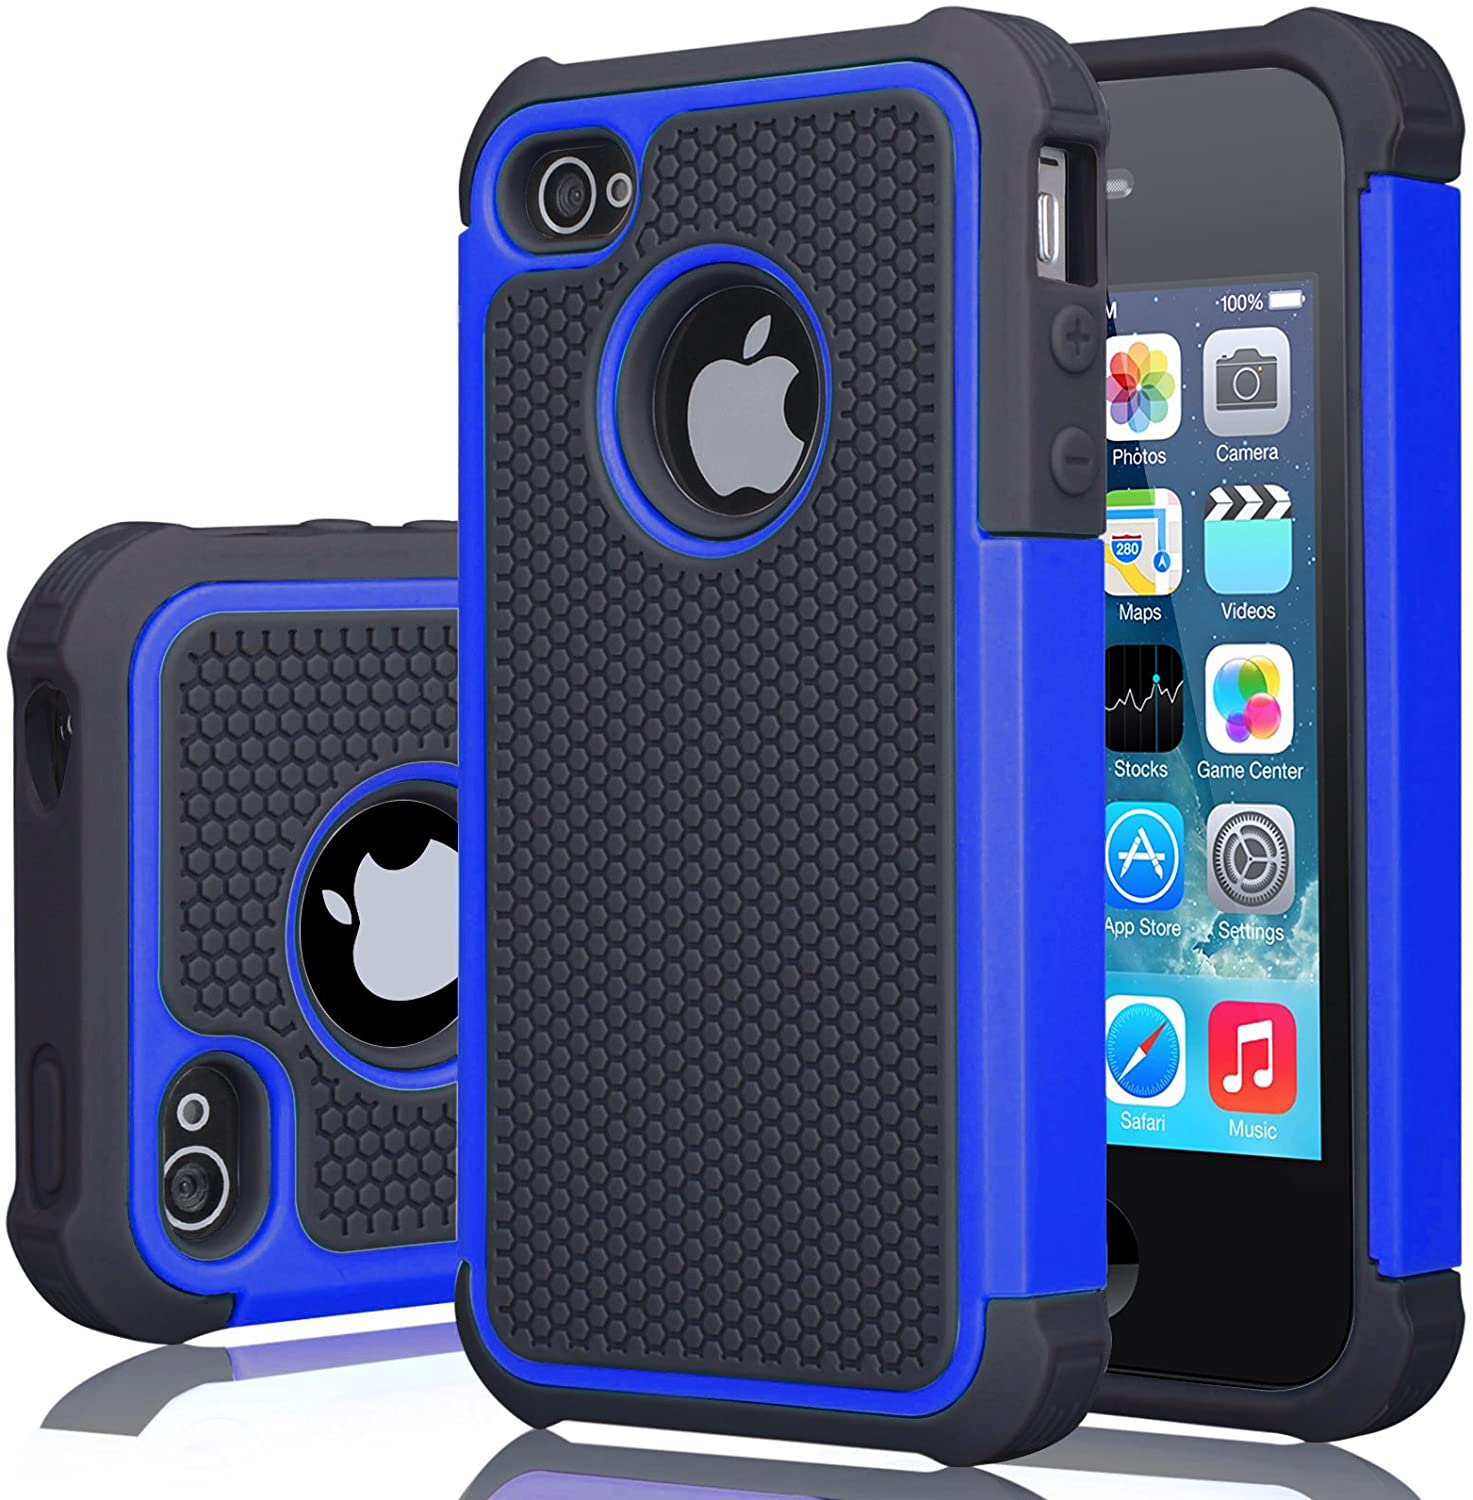 iPhone 4S Case, iPhone 4 Cover, Jeylly Shock Absorbing Hard Plastic Outer + Rubber Silicone Inner Scratch Defender Bumper Rugged Hard Case Cover for Apple iPhone 4/4S - Blue